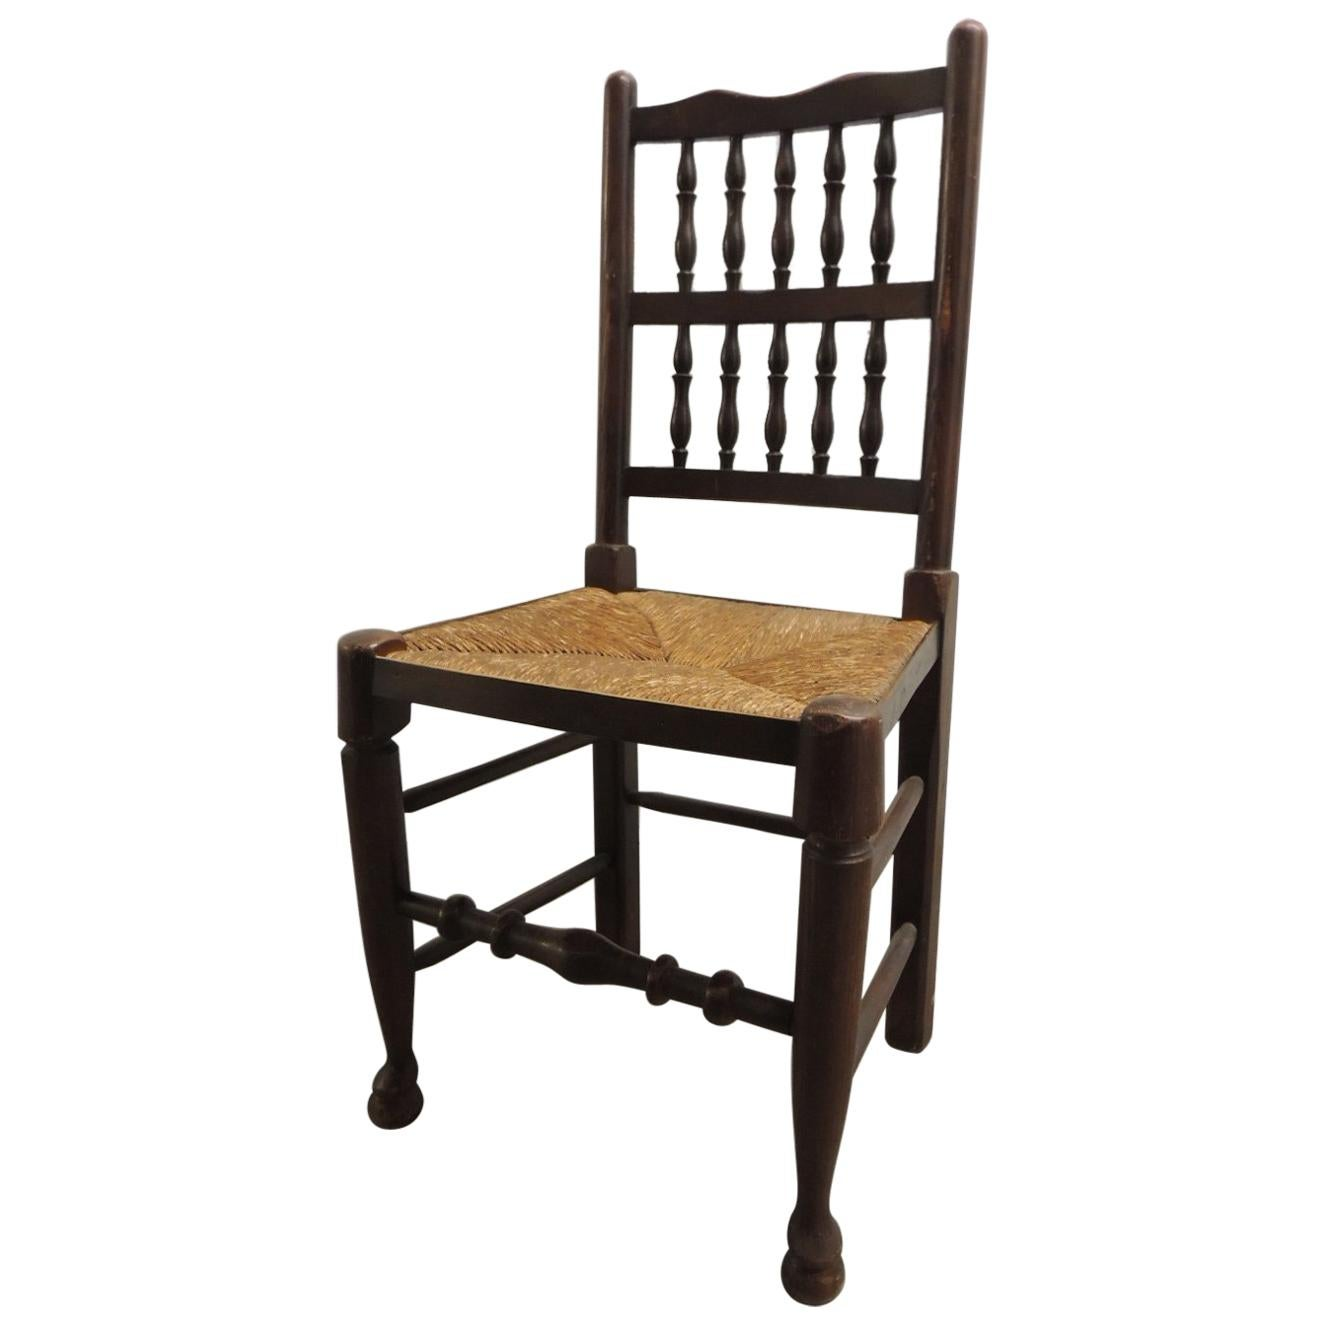 - 18th Century And Earlier Dining Room Chairs - 183 For Sale At 1stdibs